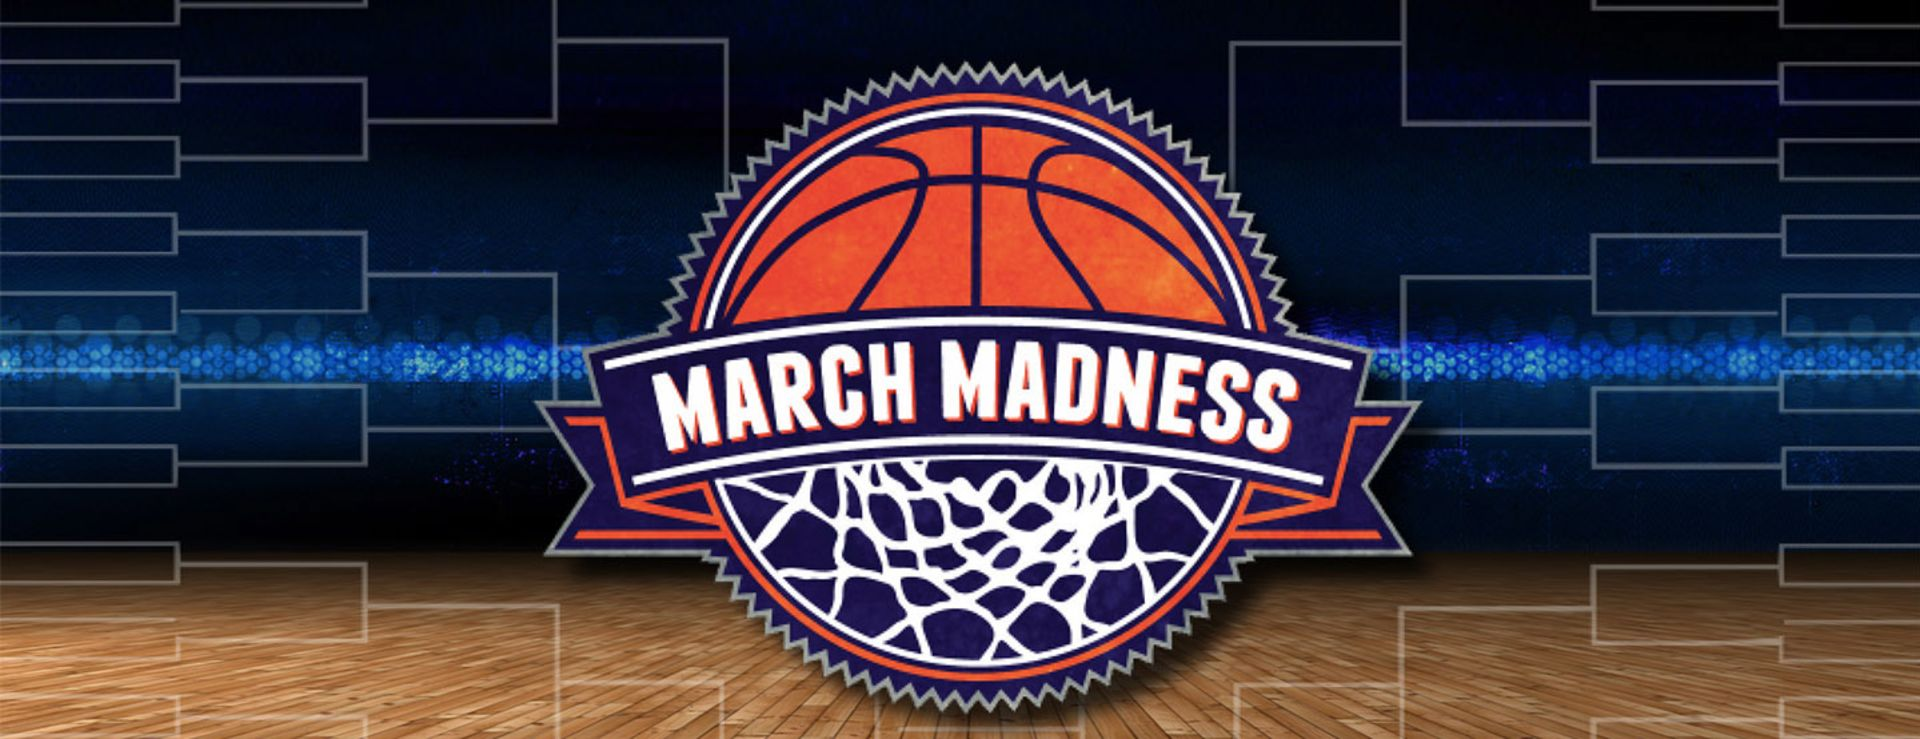 WELCOME TO MARCH MADNESS 2018!